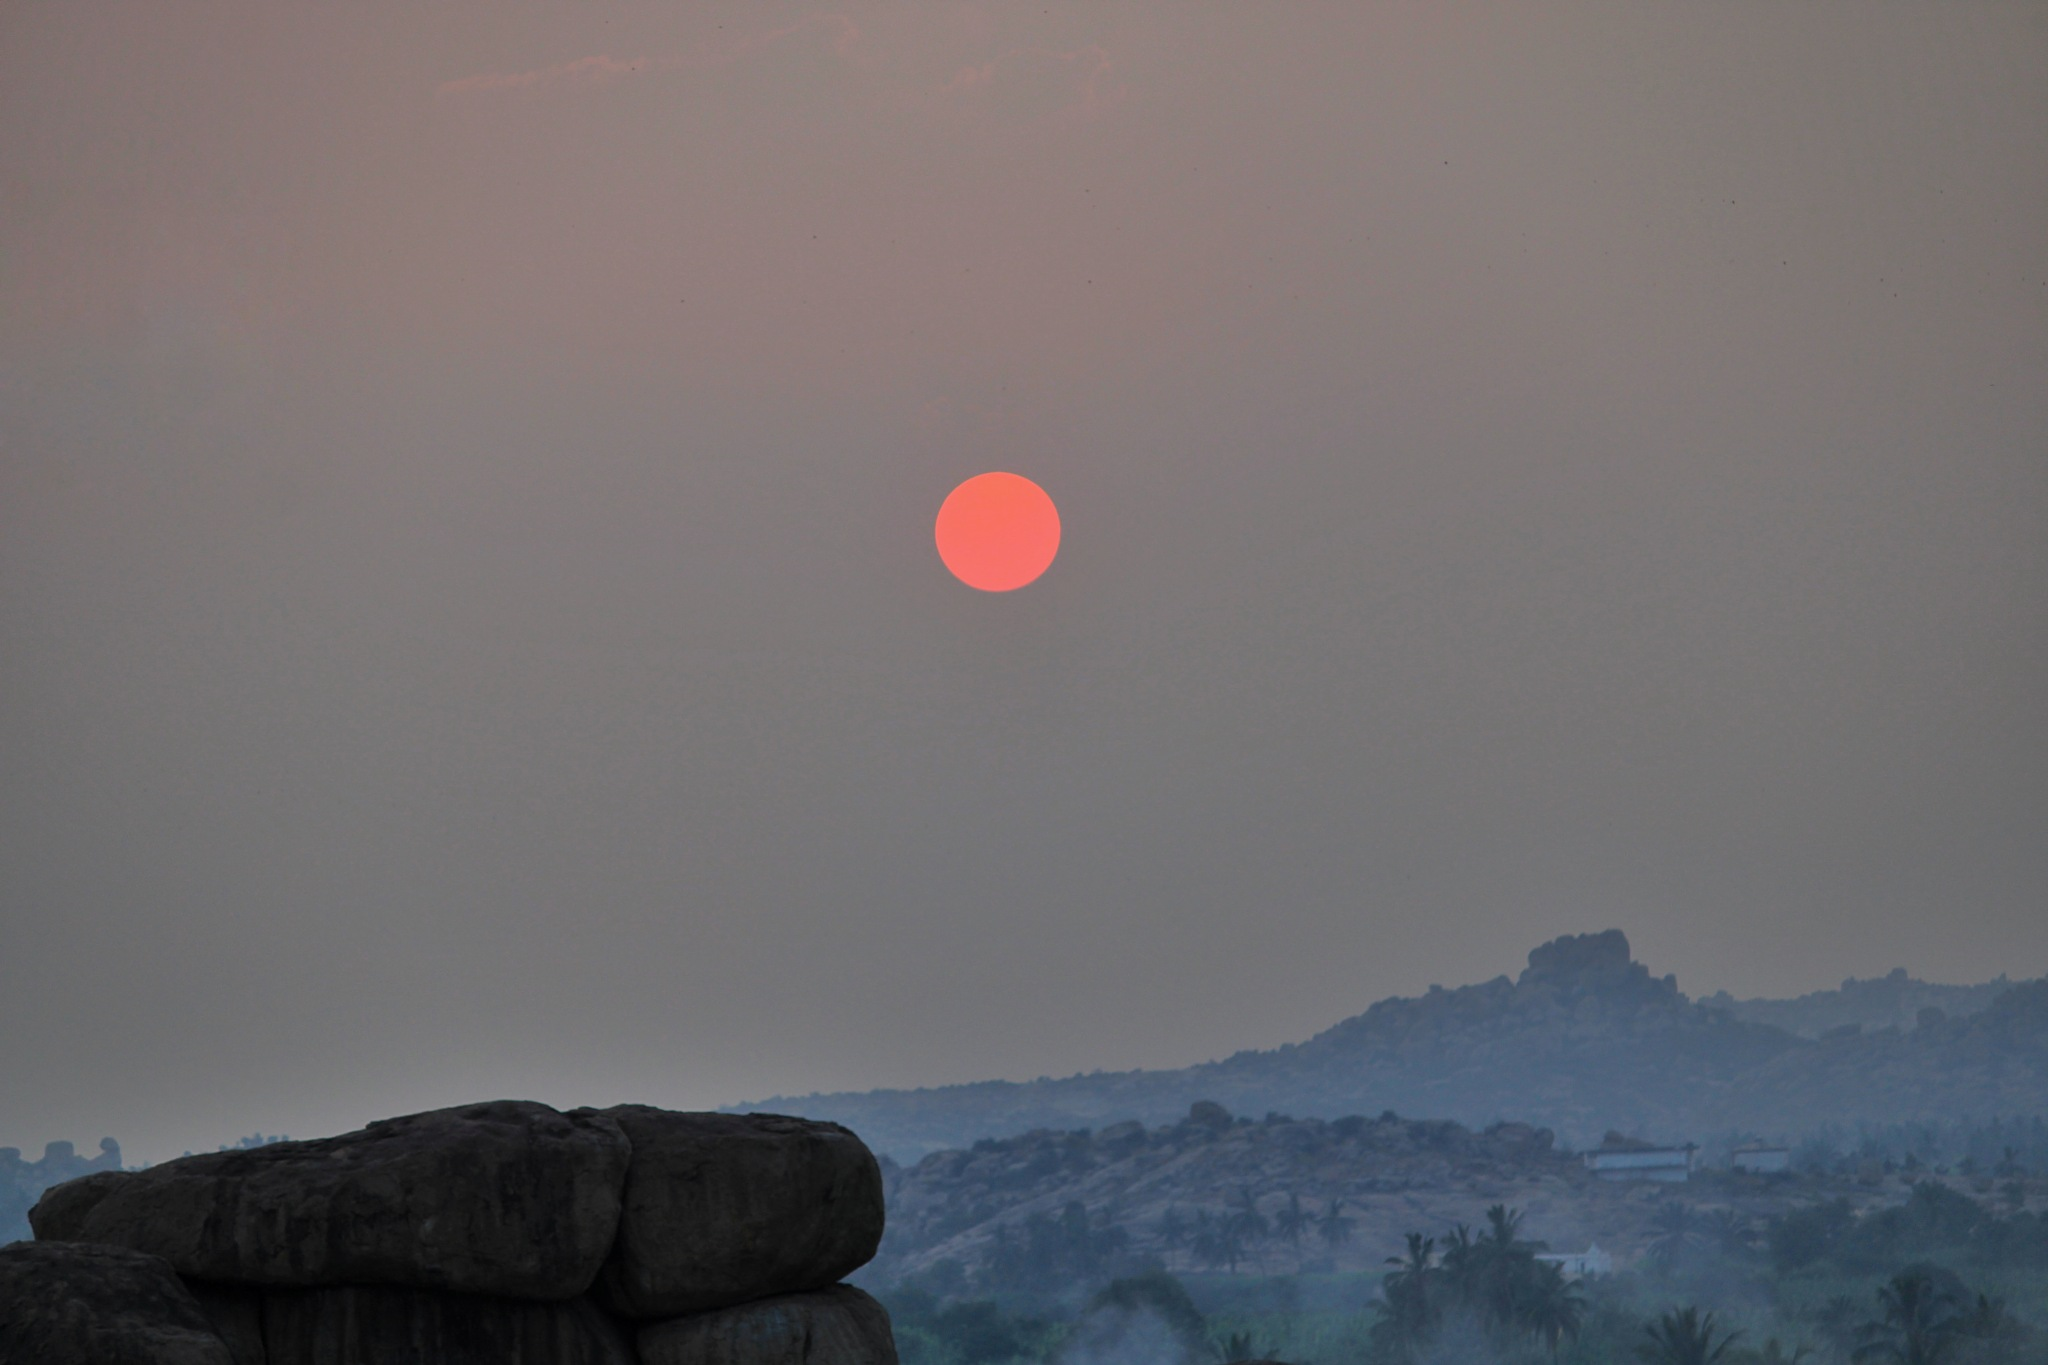 Sunset at Hampi by Sreegovind K